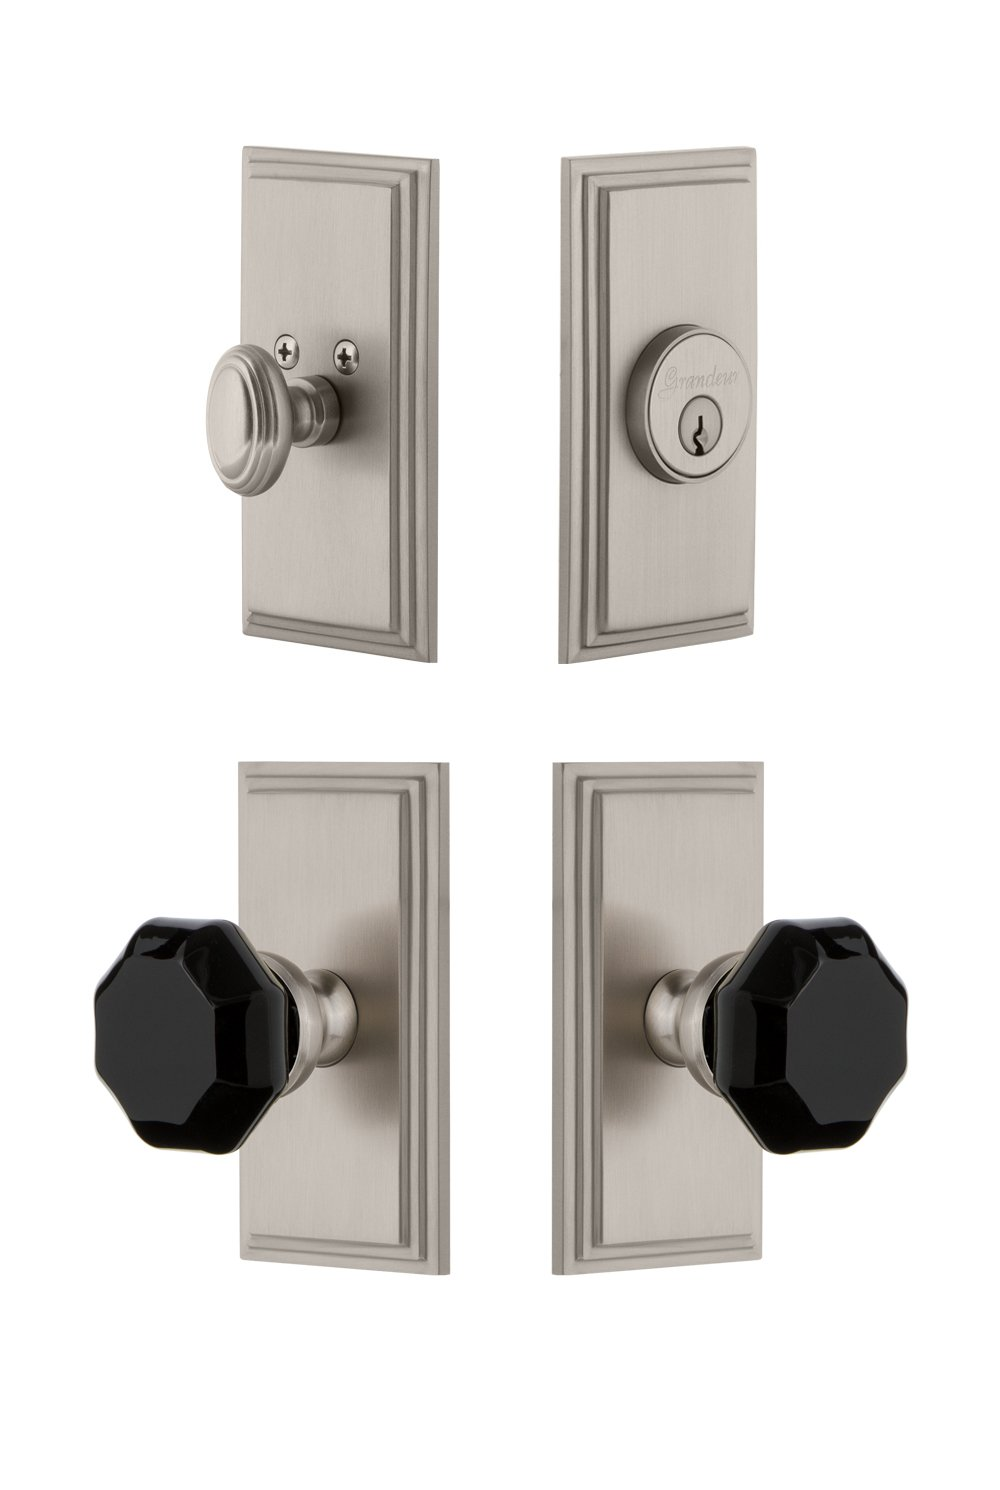 2.375 Polished Nickel Grandeur Hardware 851145 Carre Plate with Lyon Knob and Matching Deadbolt Combo Pack Backset Size